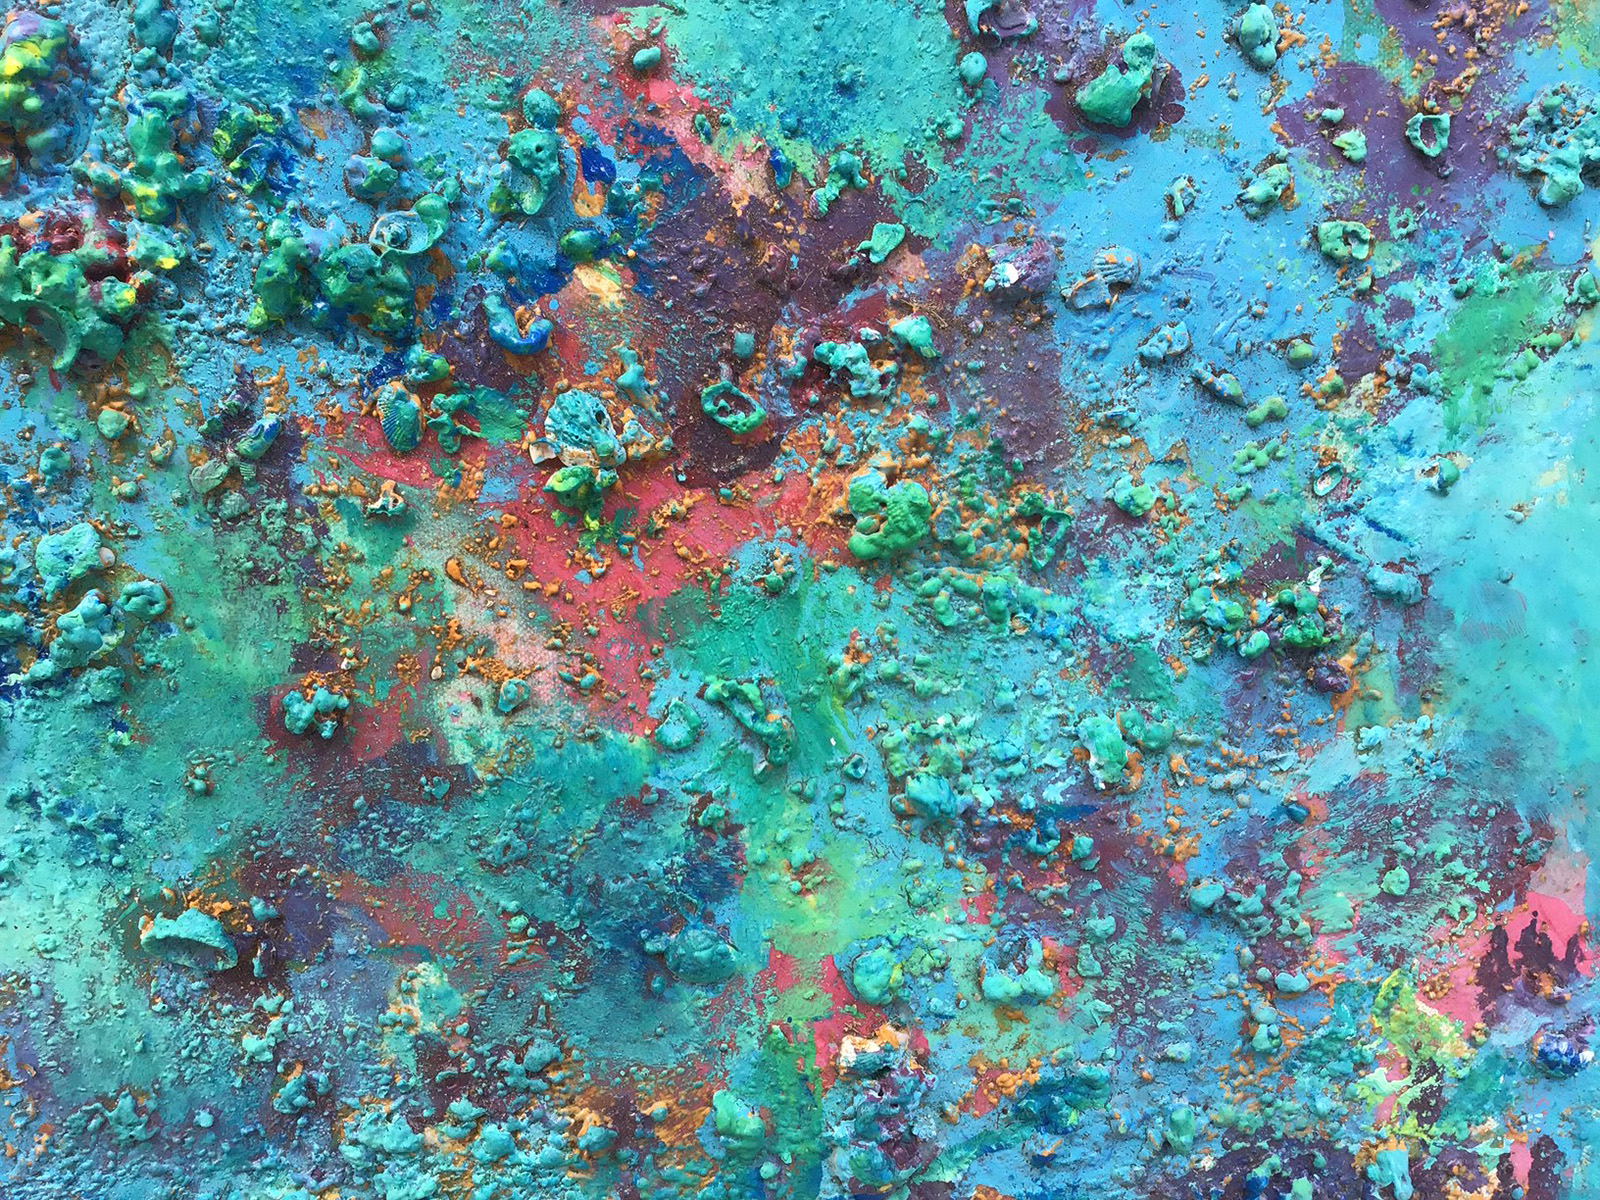 Abstract #14 Blue, Green and Red